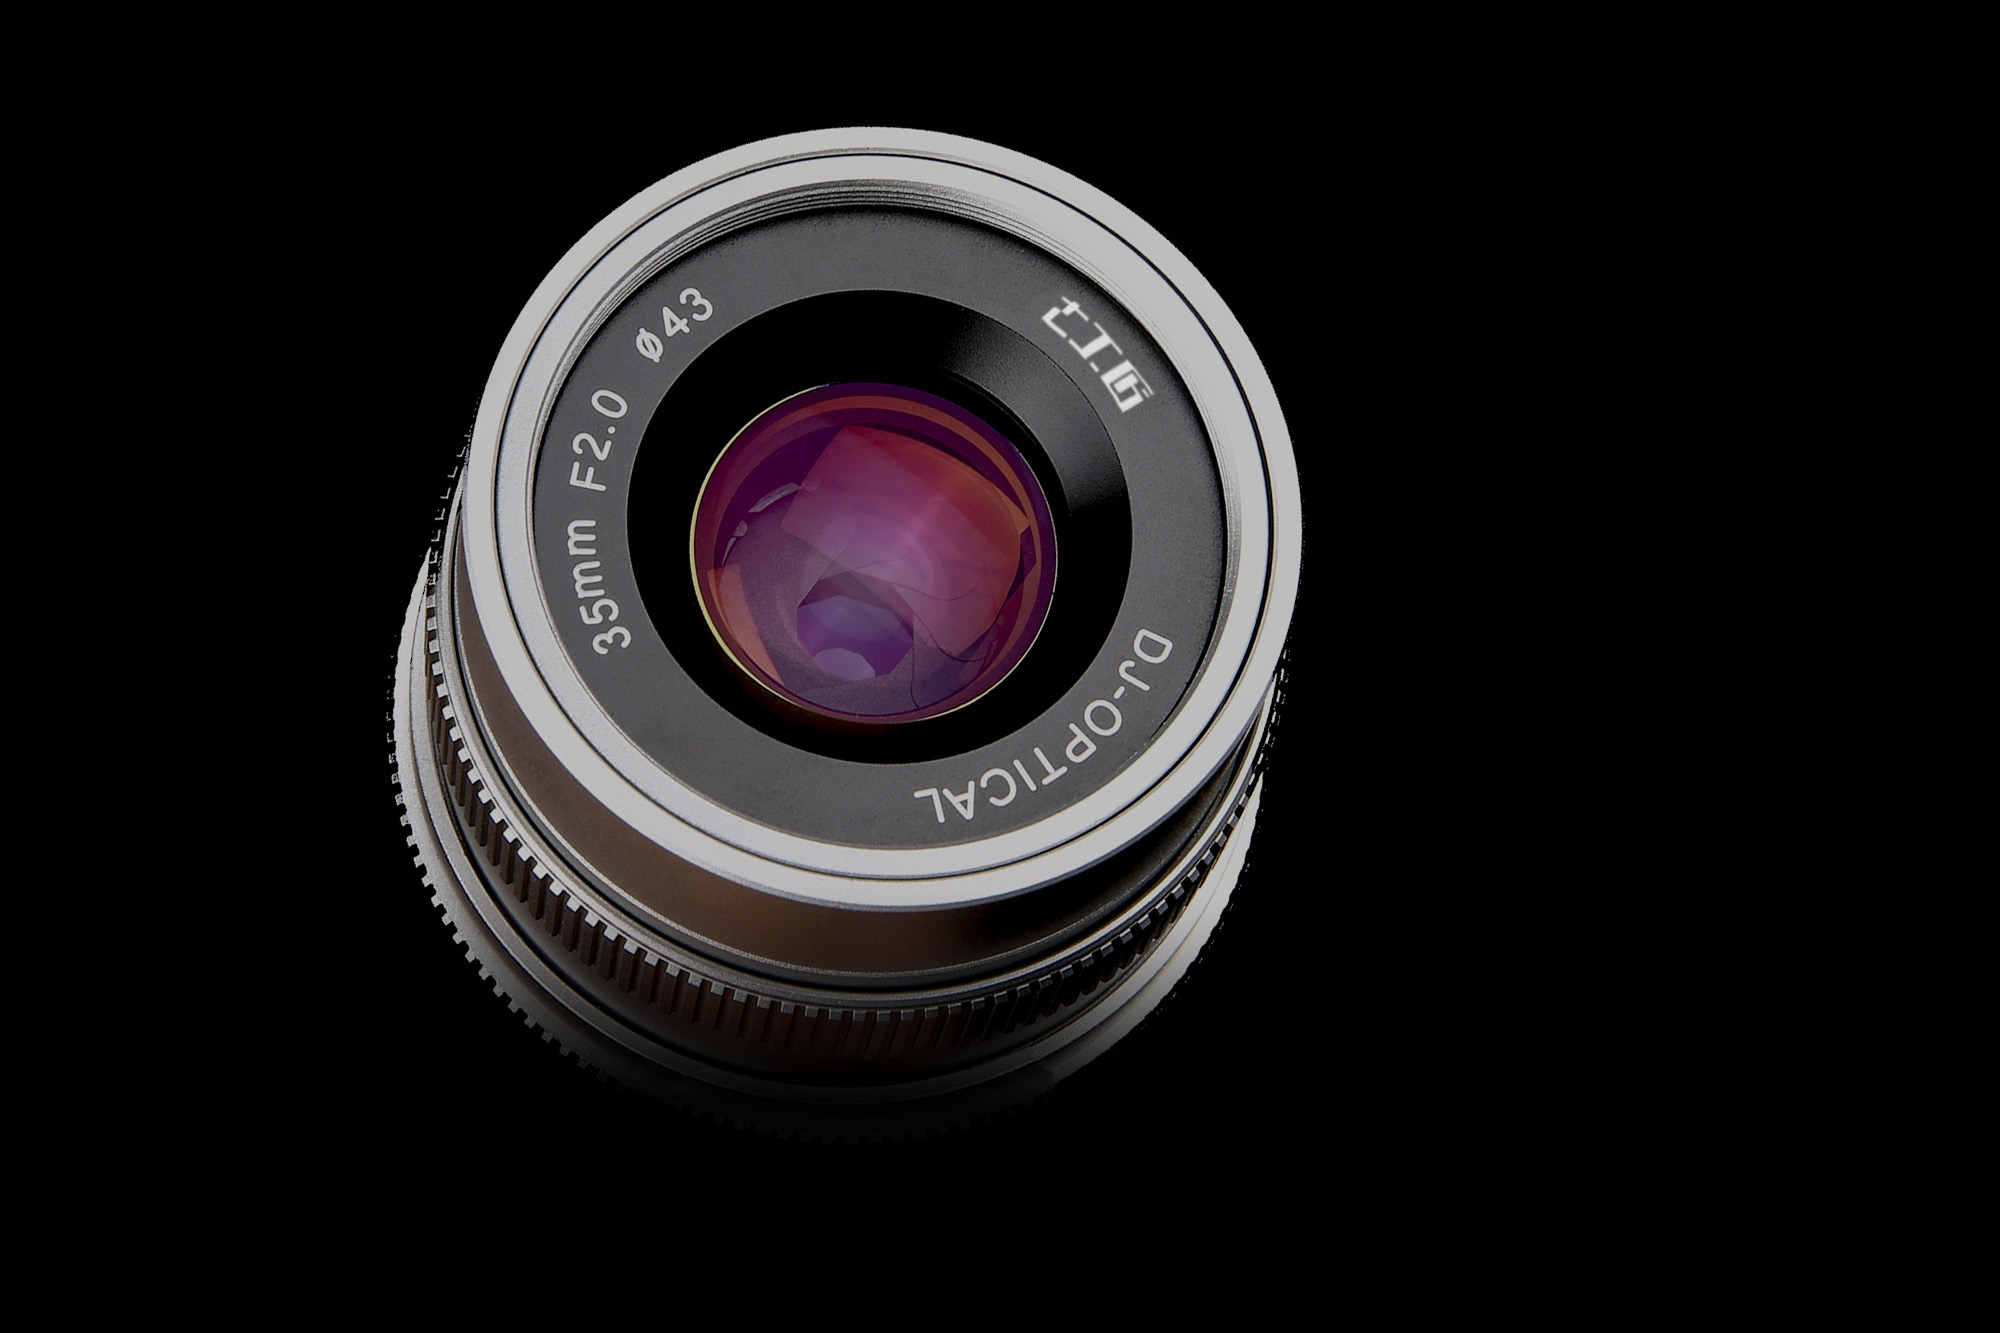 7artisans Dj Optical Mirrorless Lenses Photo Rumors